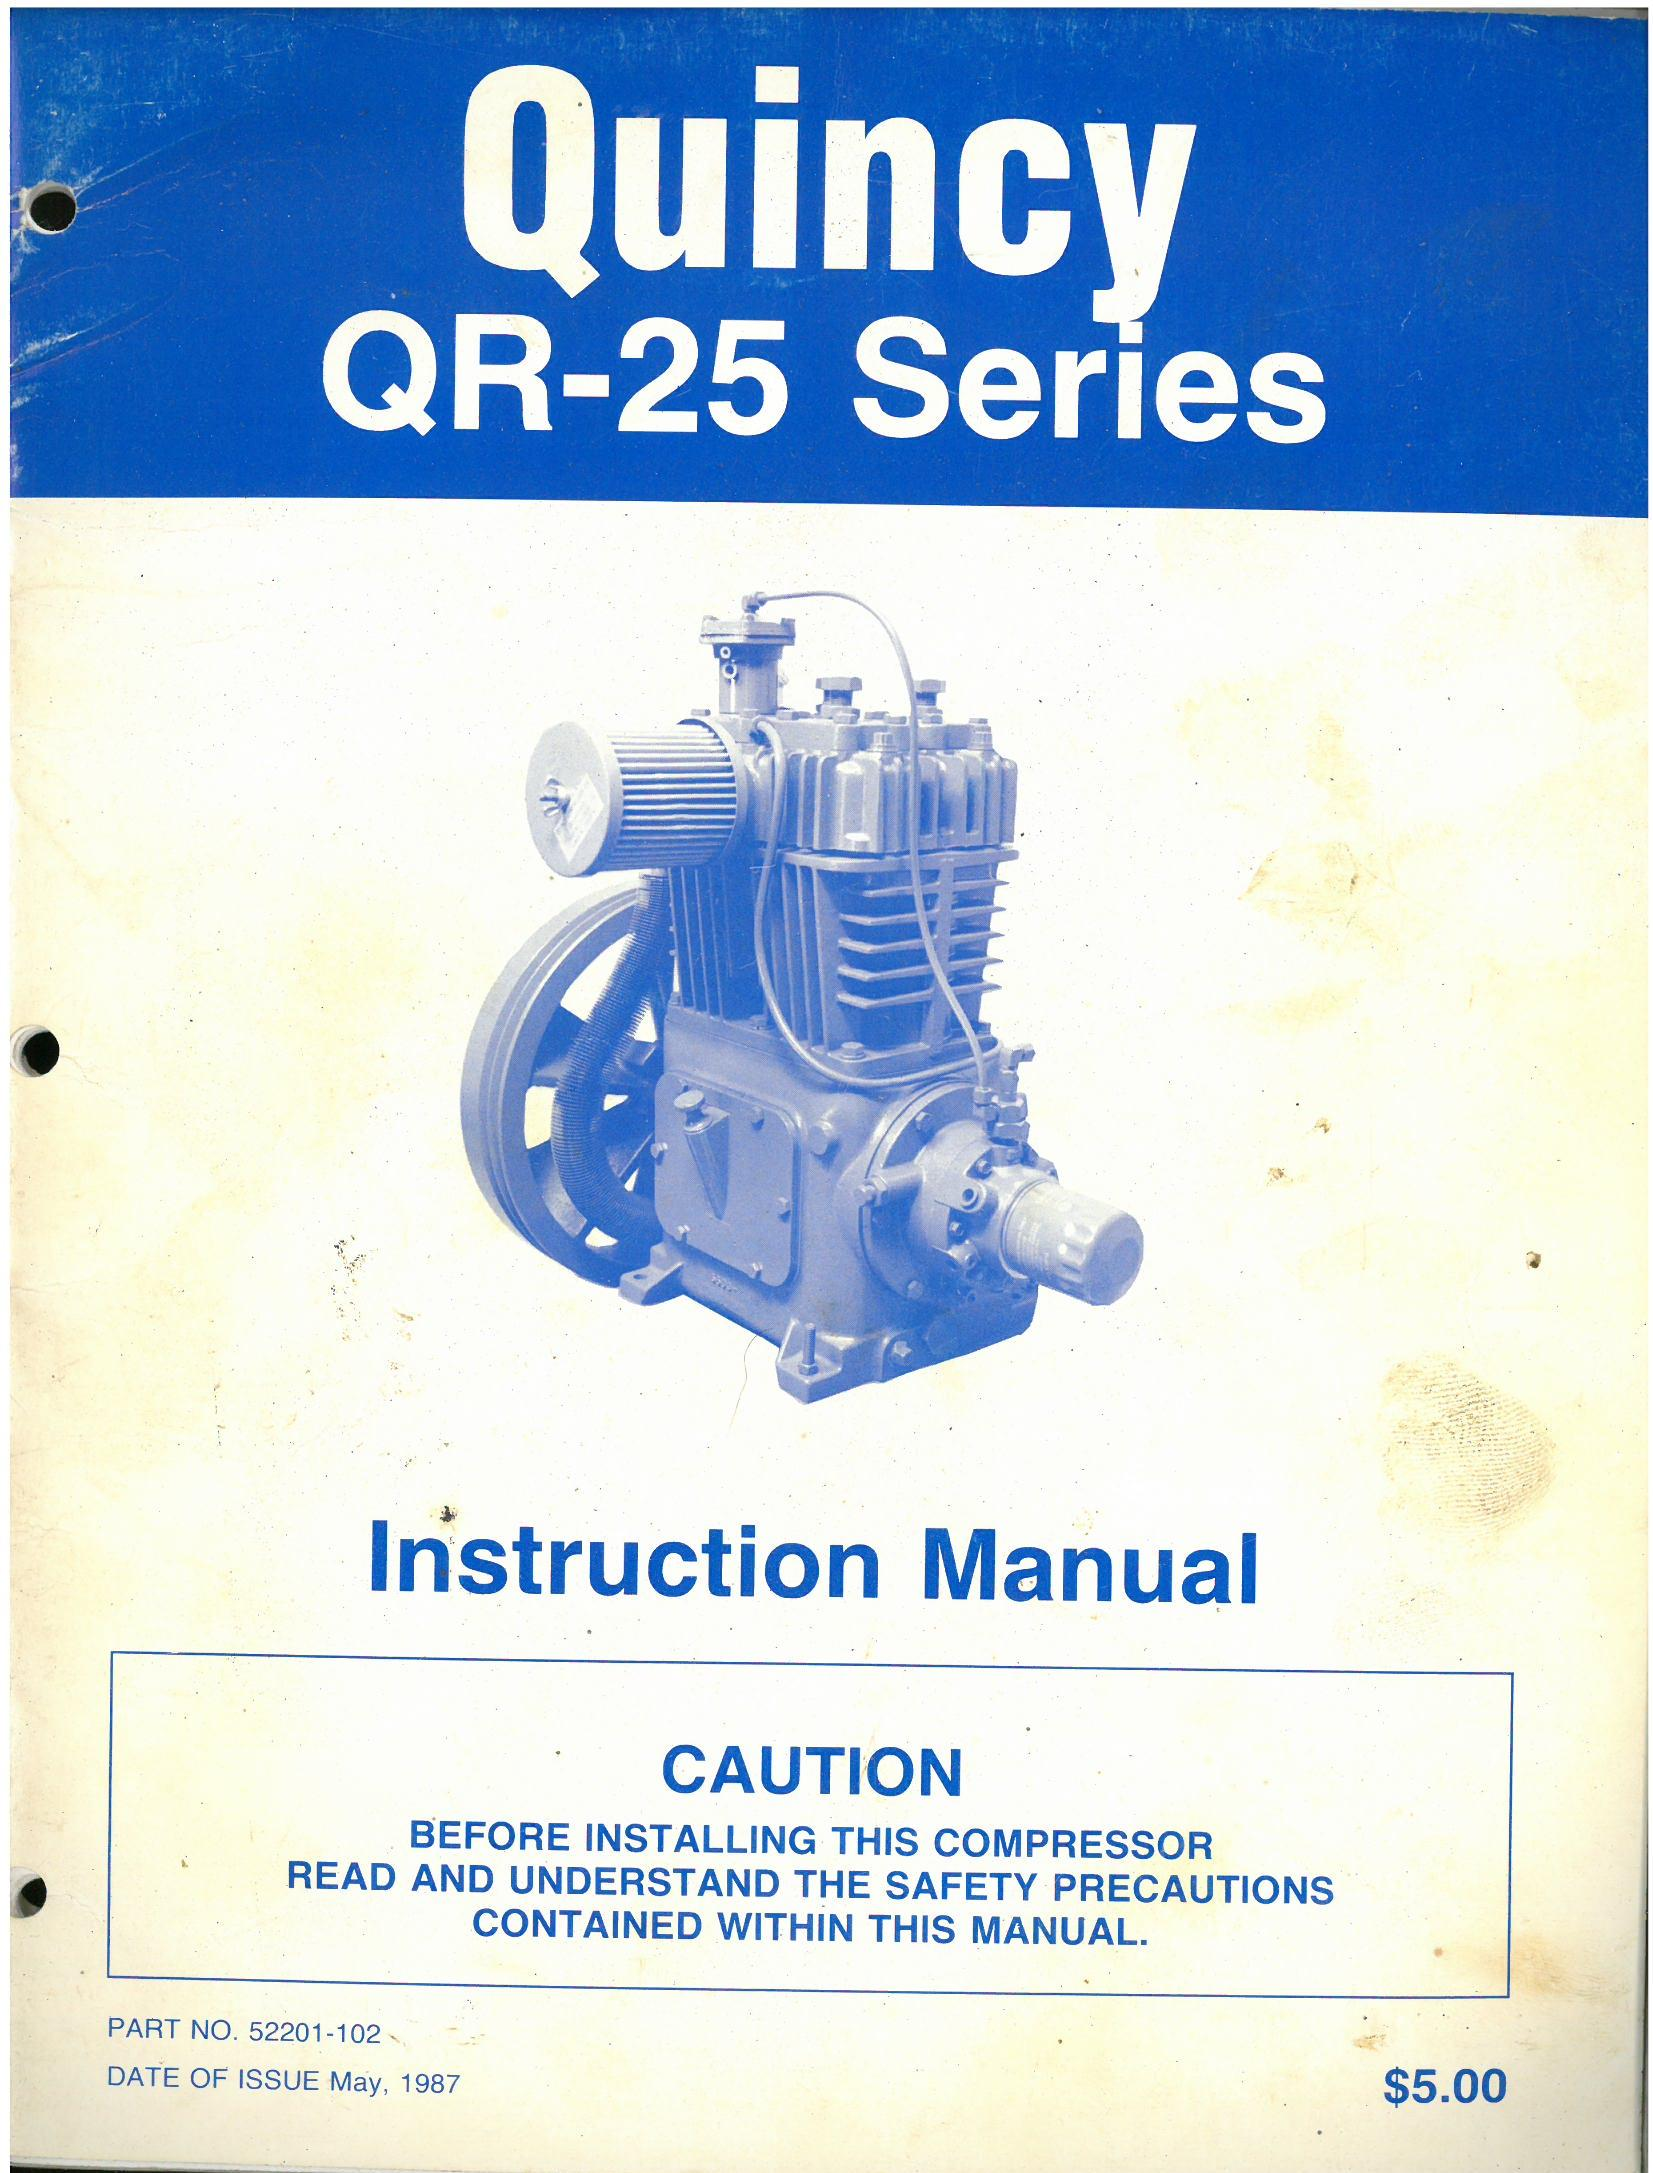 Quincy Qr 25 Series Compressor